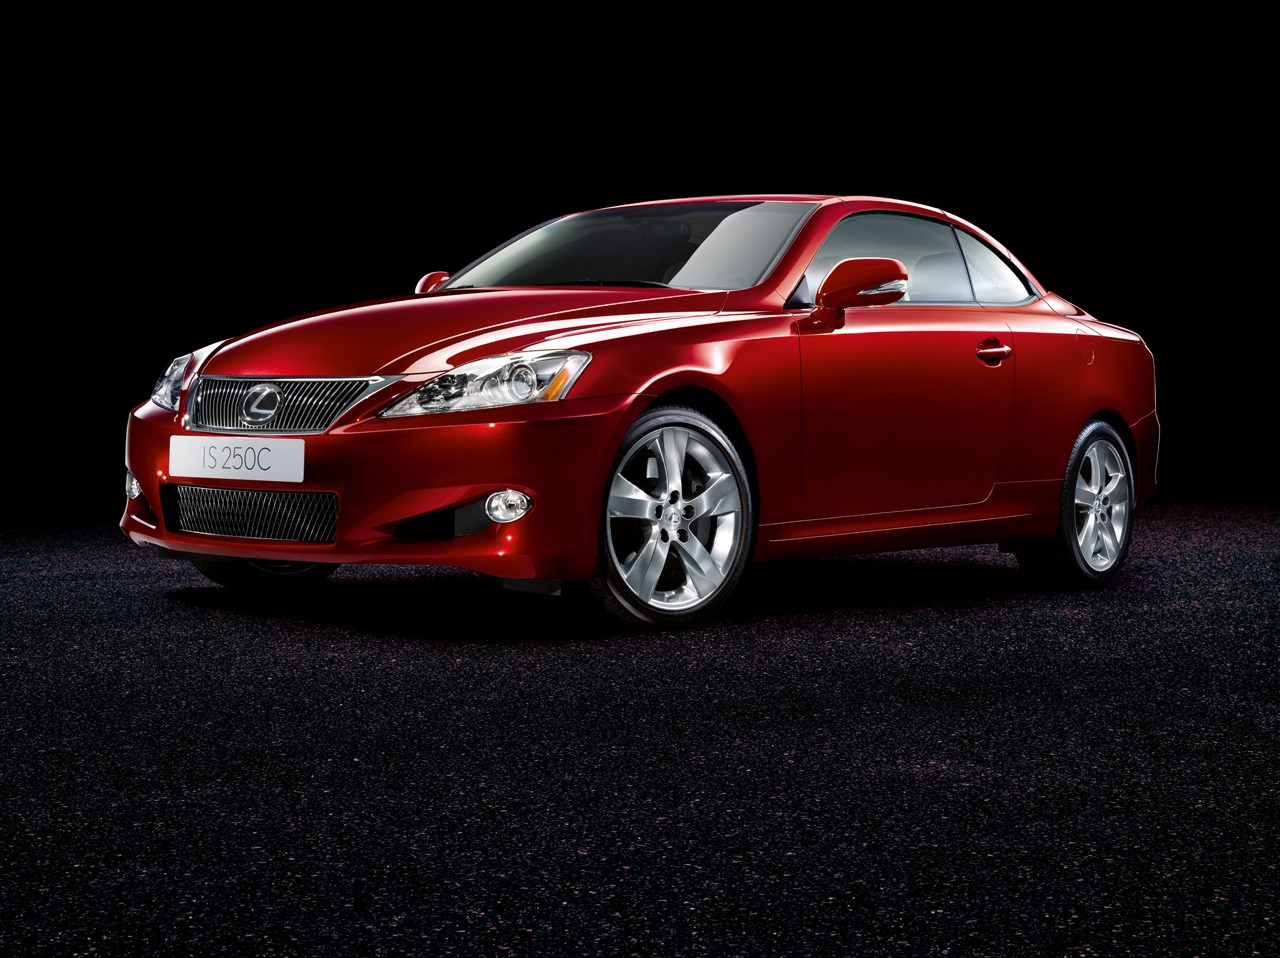 2010 Lexus Is 250 C #10